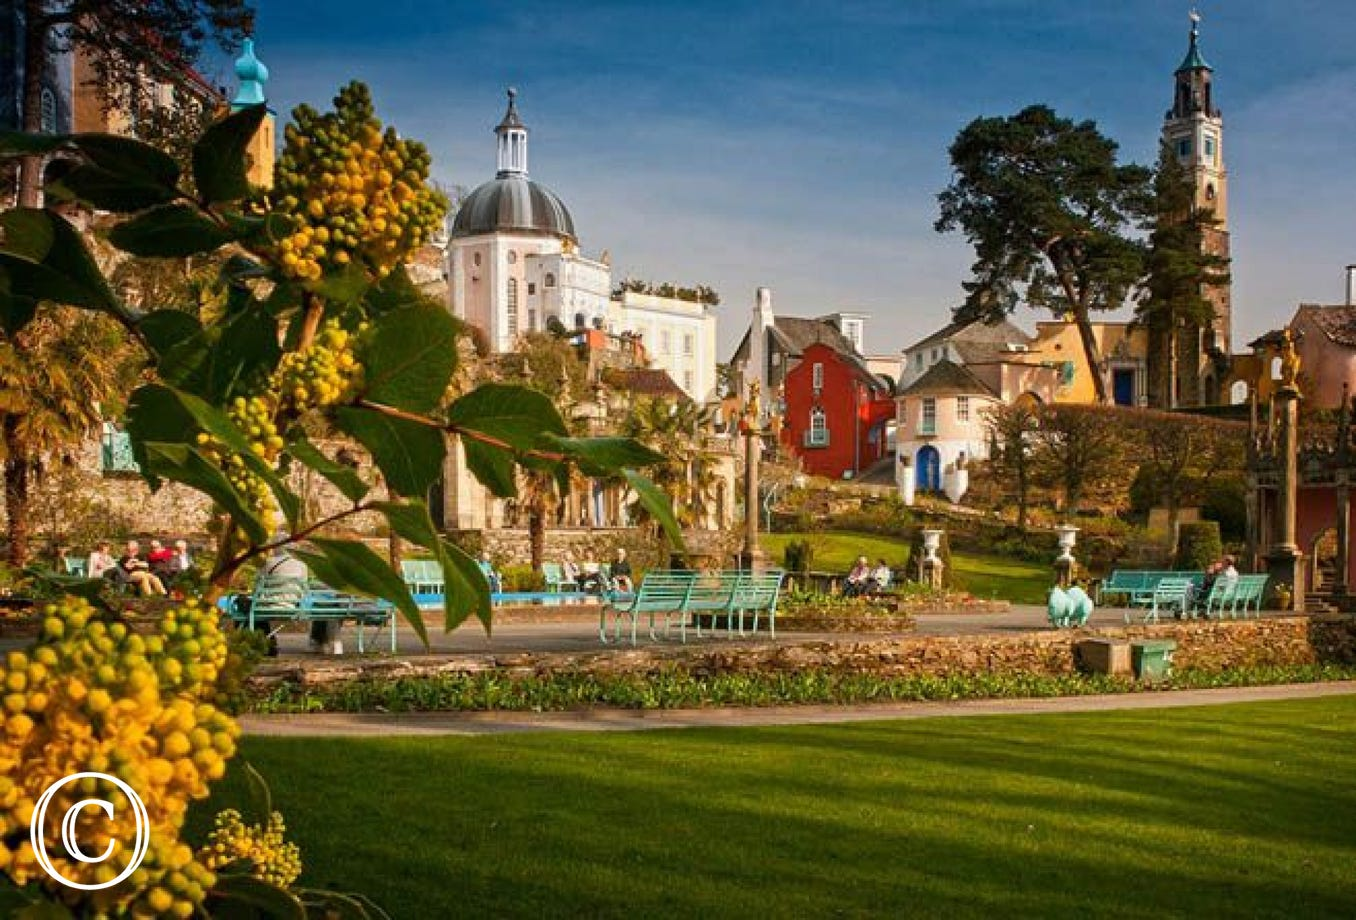 Portmeirion Italianate Village, 11 miles from your Trawsfynydd accommodation